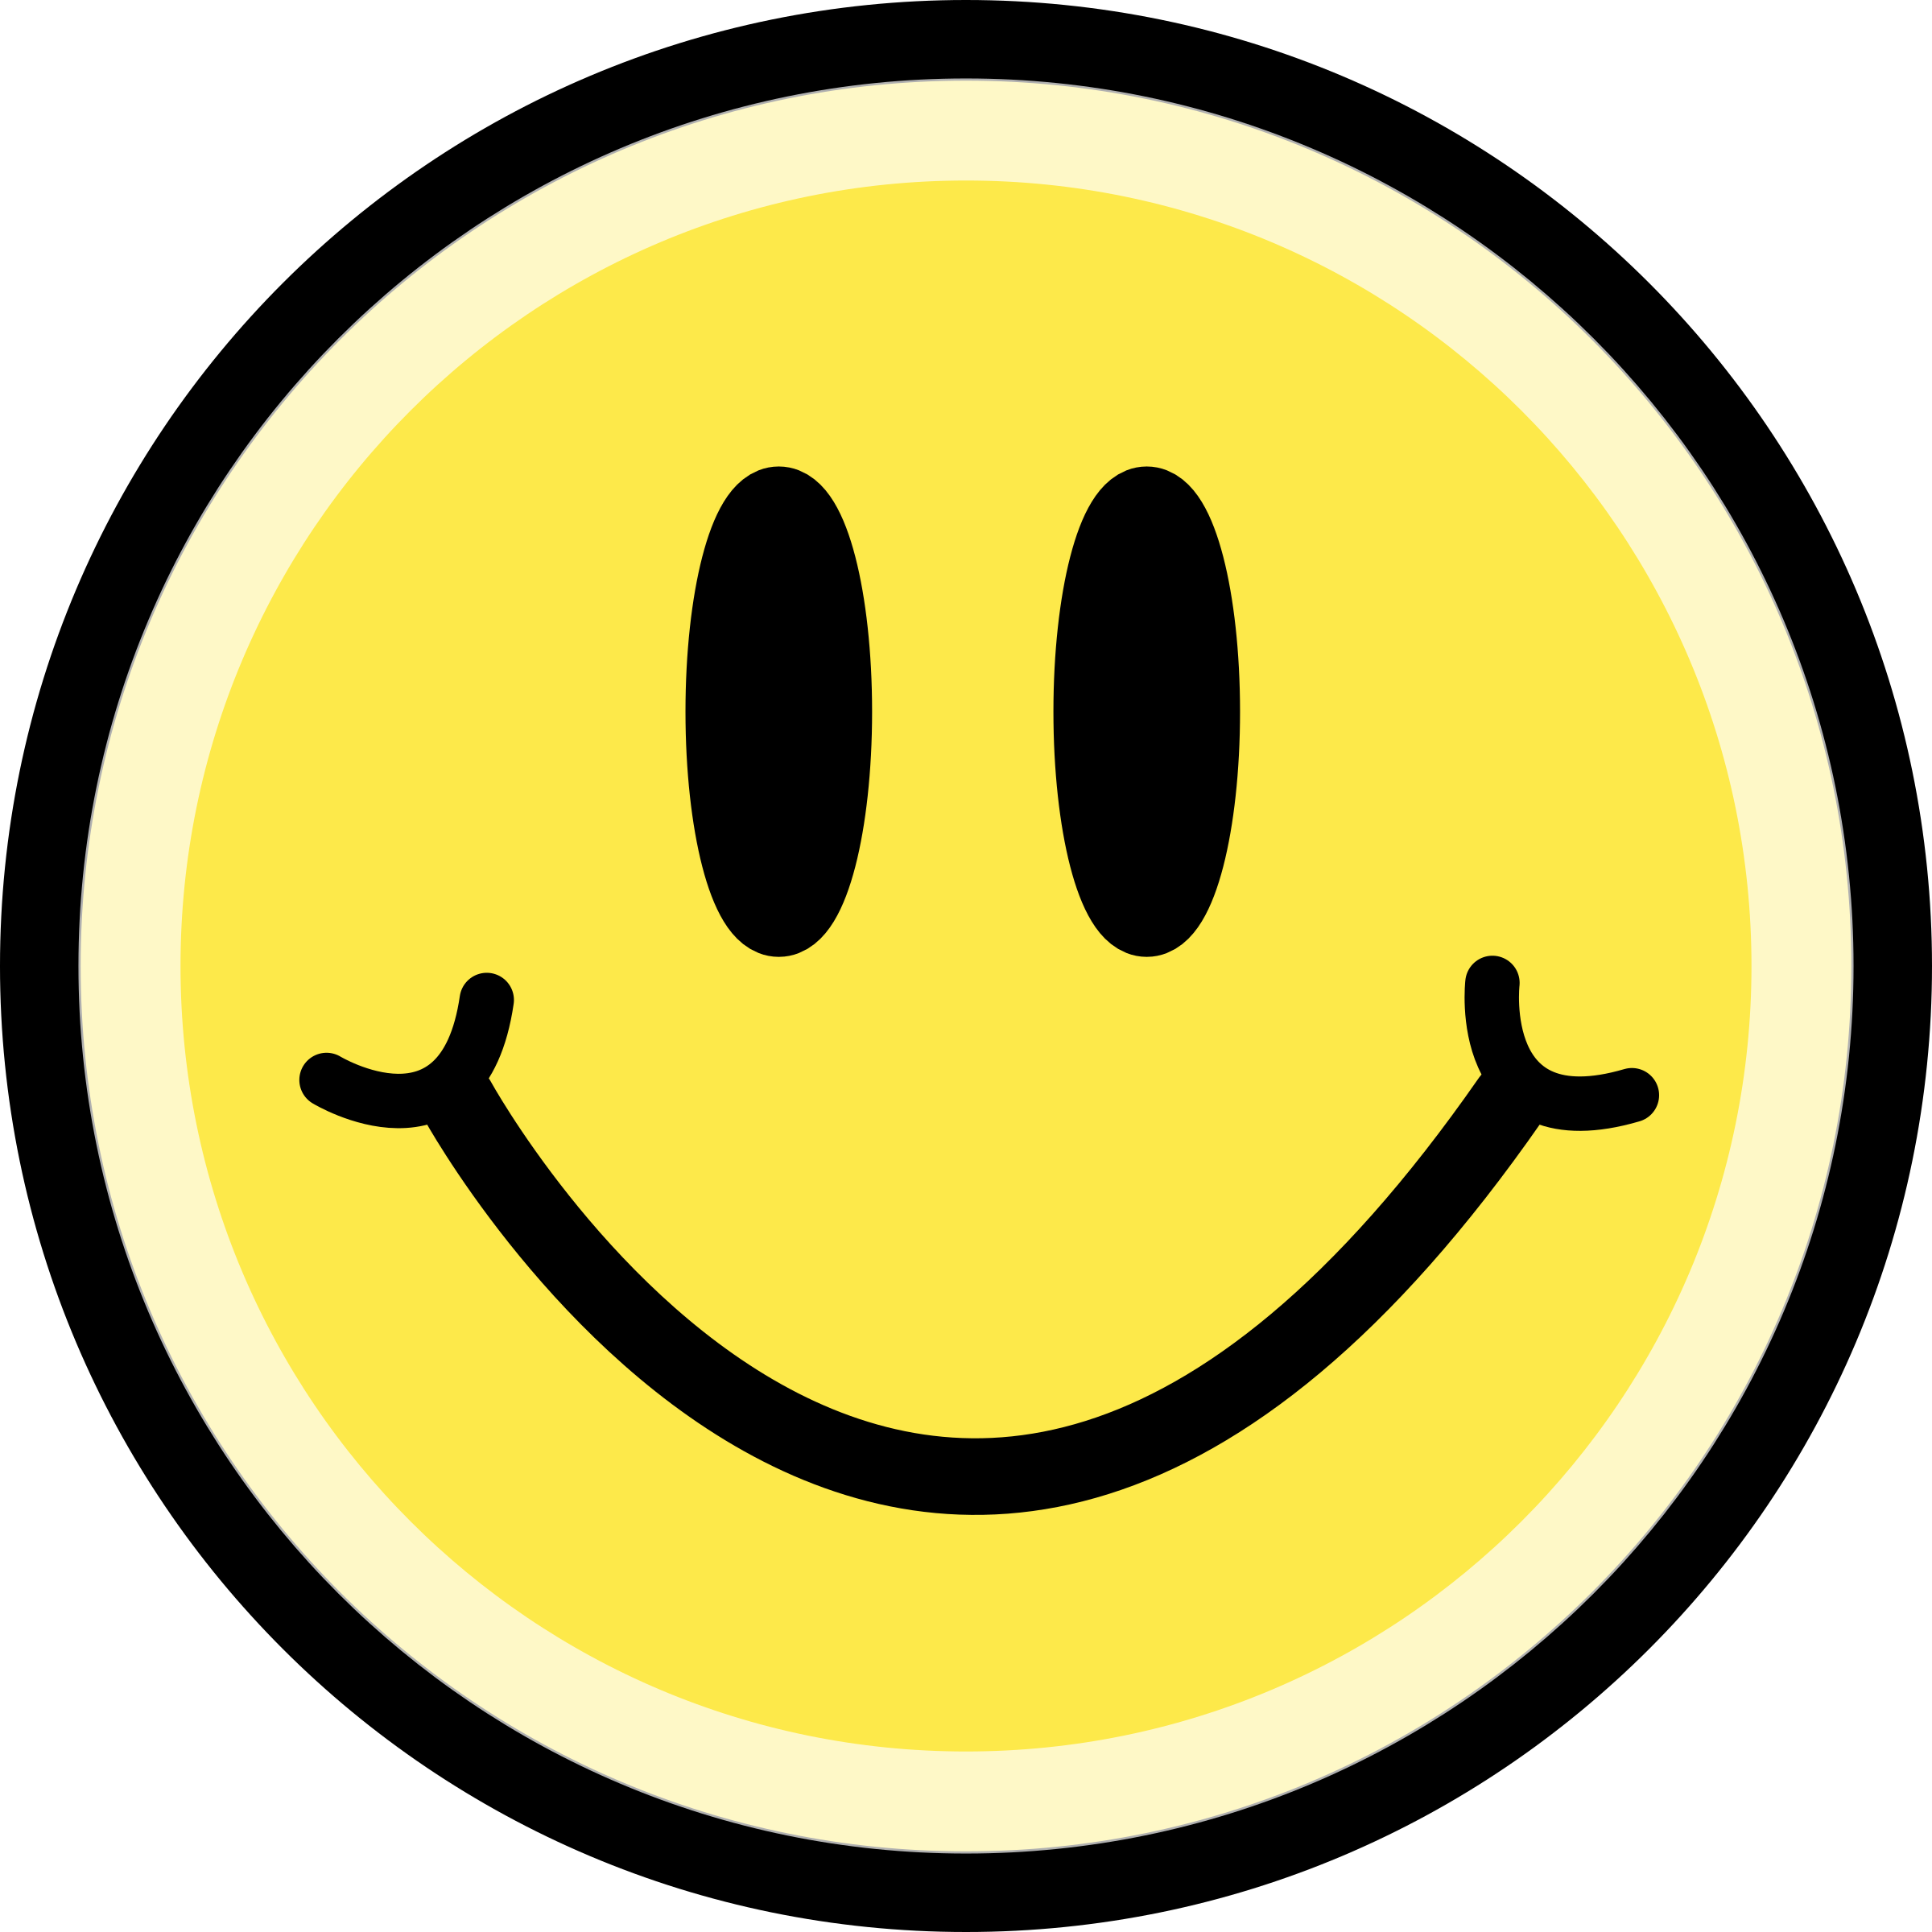 Smiley Looking Happy Png Image Smiley Face Icons Emoticon Face Icon